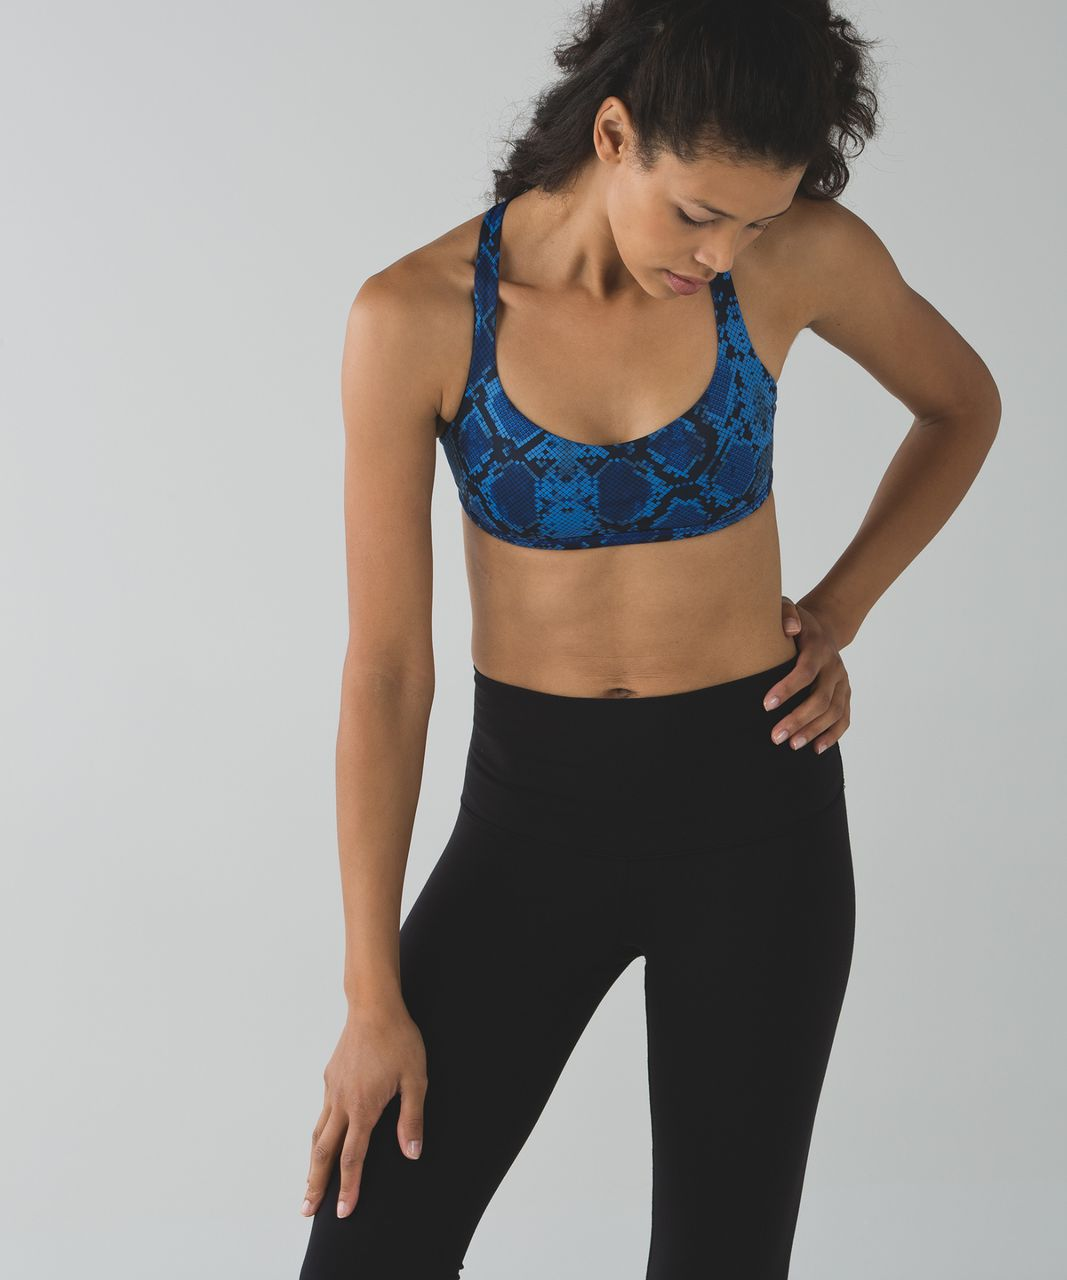 Lululemon Free To Be *Wild - Mini Ziggy Snake Pipe Dream Blue Sapphire Blue / Naval Blue / Pipe Dream Blue